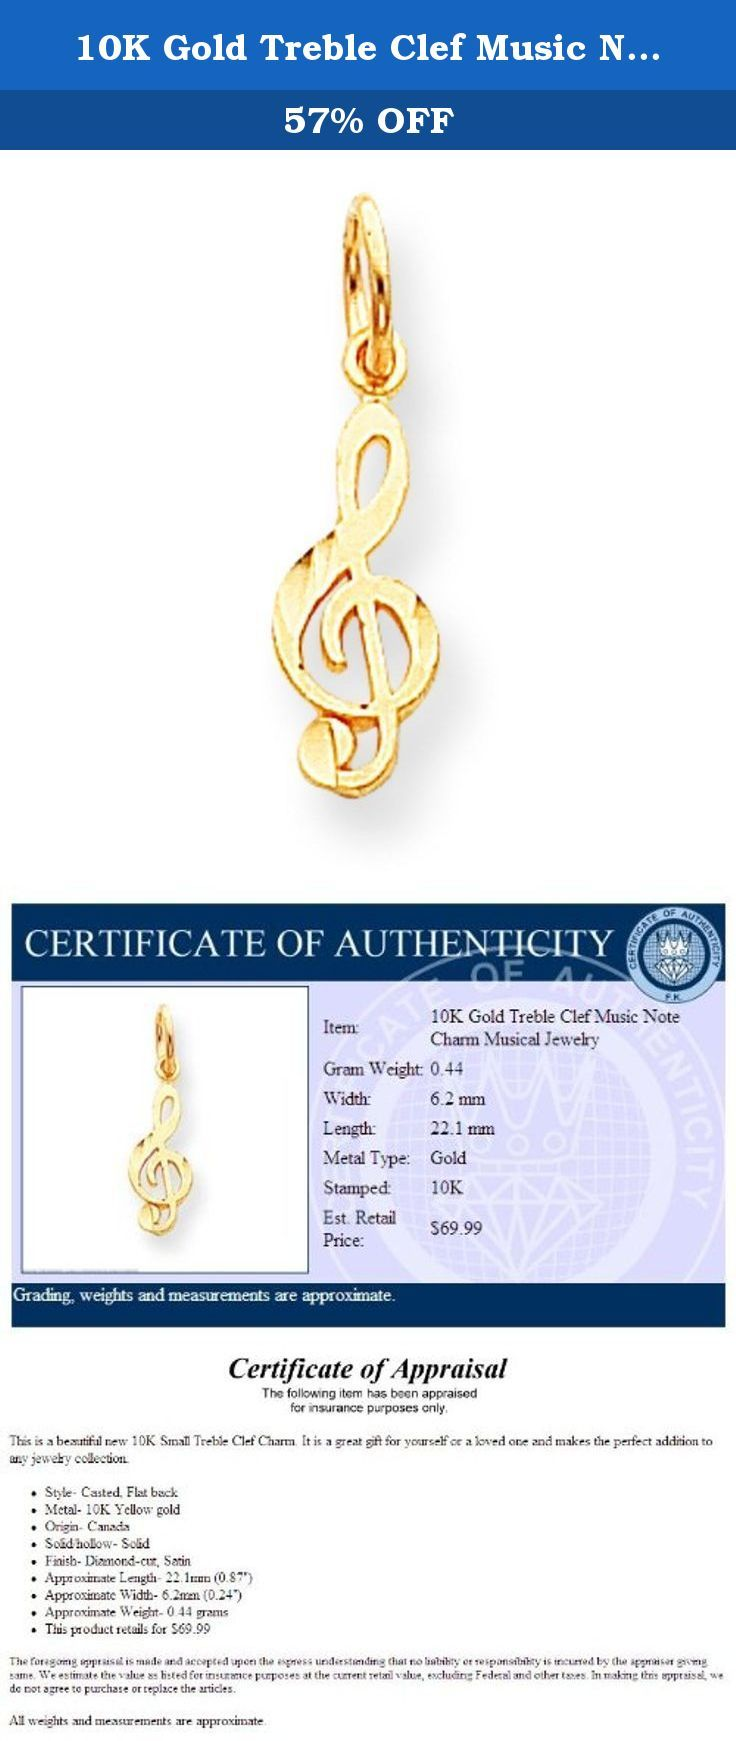 K gold treble clef music note charm musical jewelry this is a